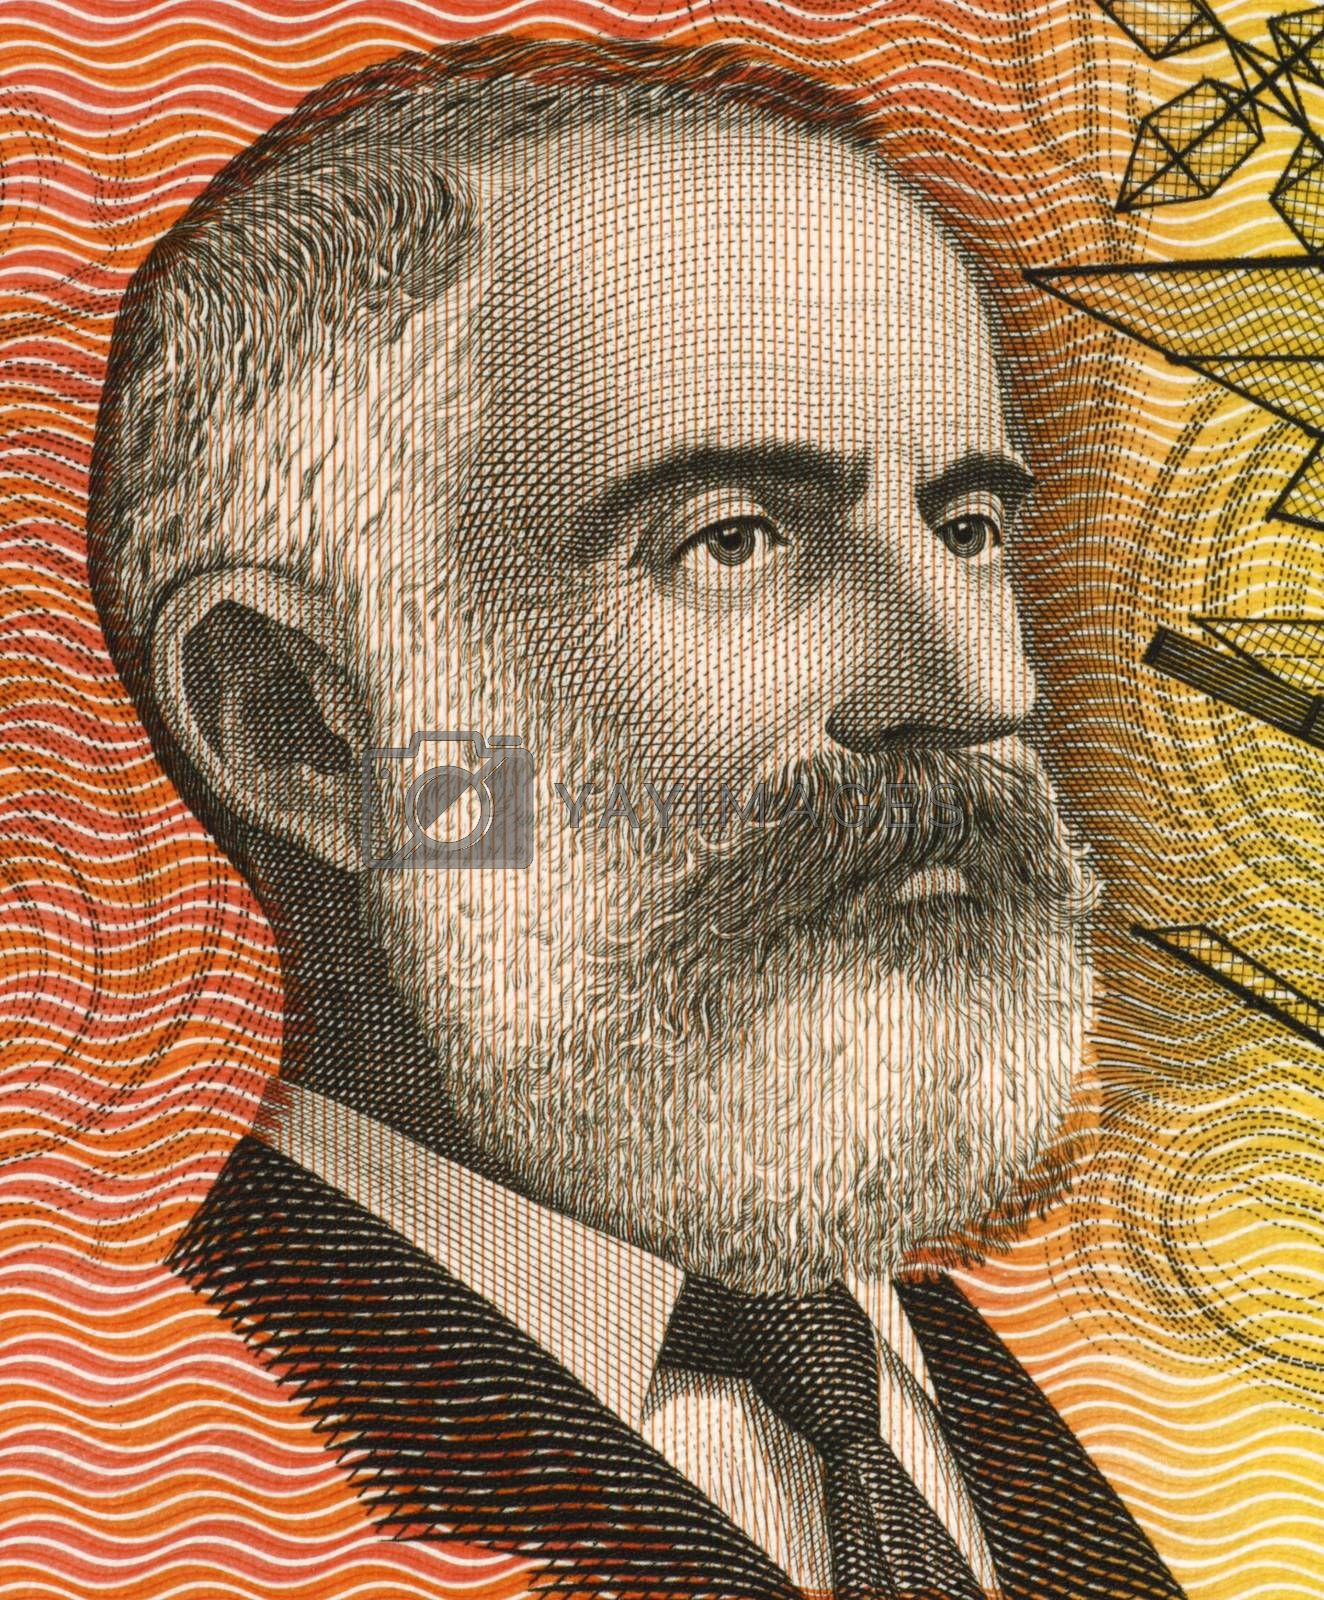 Lawrence Hargrave (1850-1915) on 20 Dollars 1974 banknote from Australia. Engineer, explorer, astronomer, inventor and aeronautical pioneer.